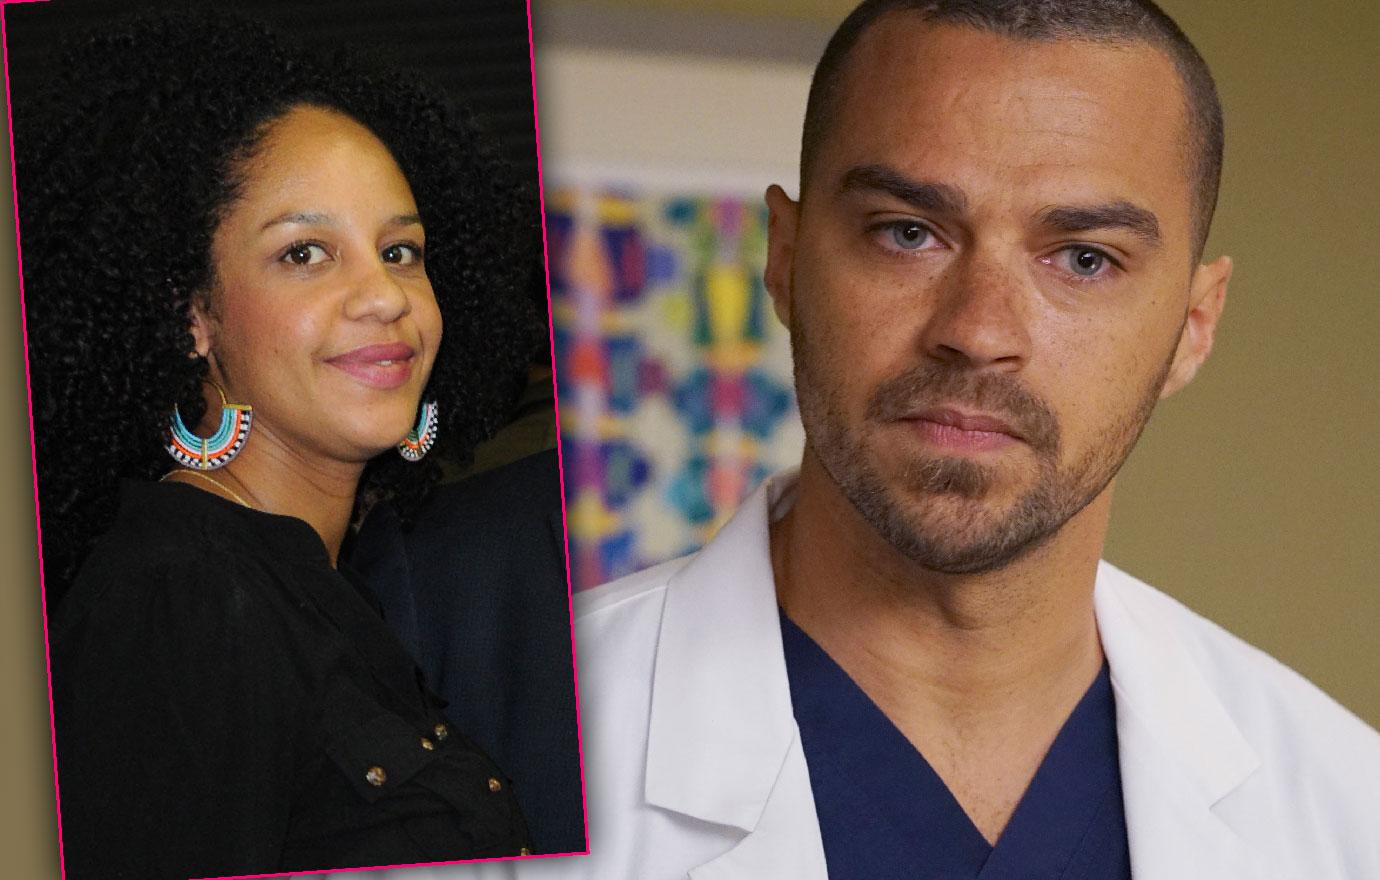 Greys Anatomy Star Jesse Williams Fights With Ex-Wife